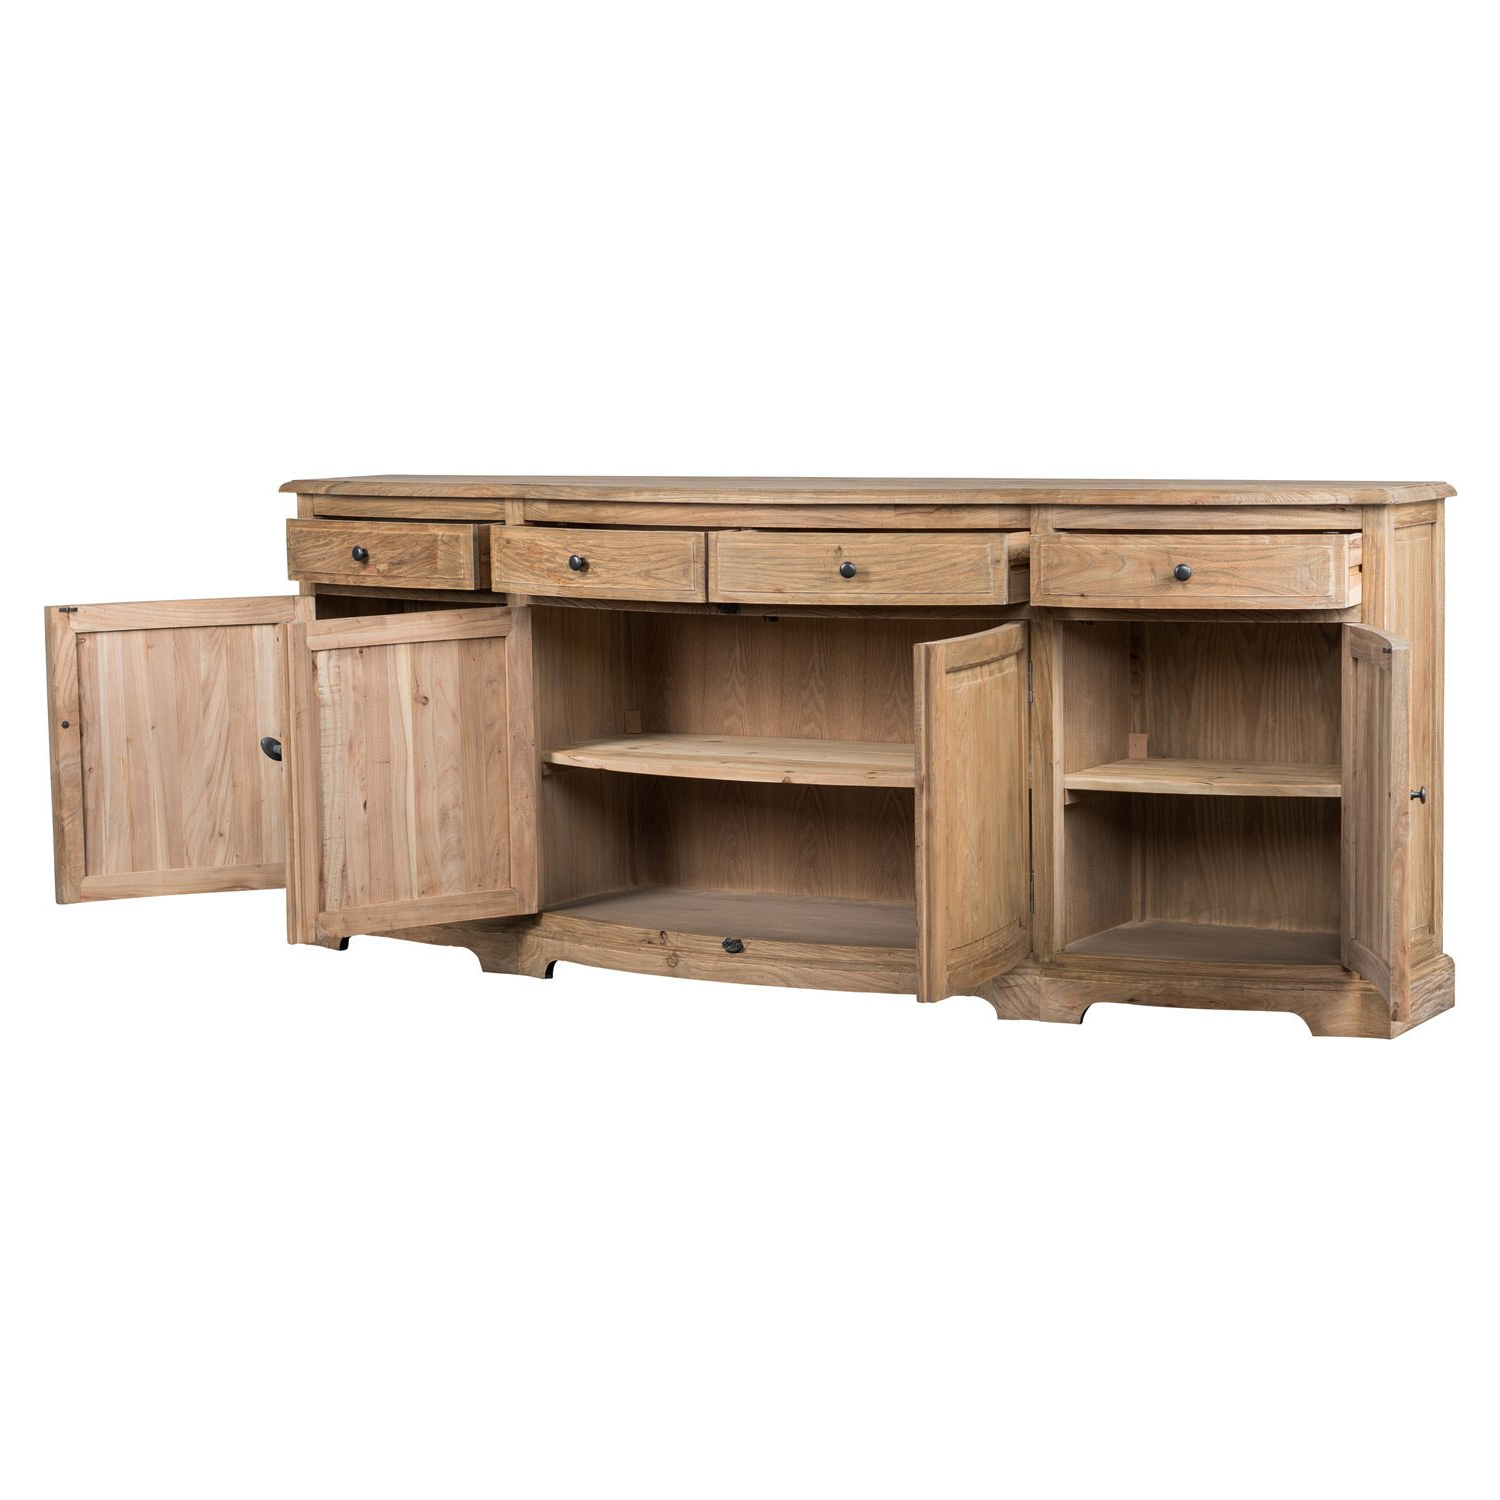 2018 Shop Benjamin Reclaimed Wood Natural 87 Inch Sideboardkosas Home Regarding Natural Oak Wood 78 Inch Sideboards (View 1 of 20)